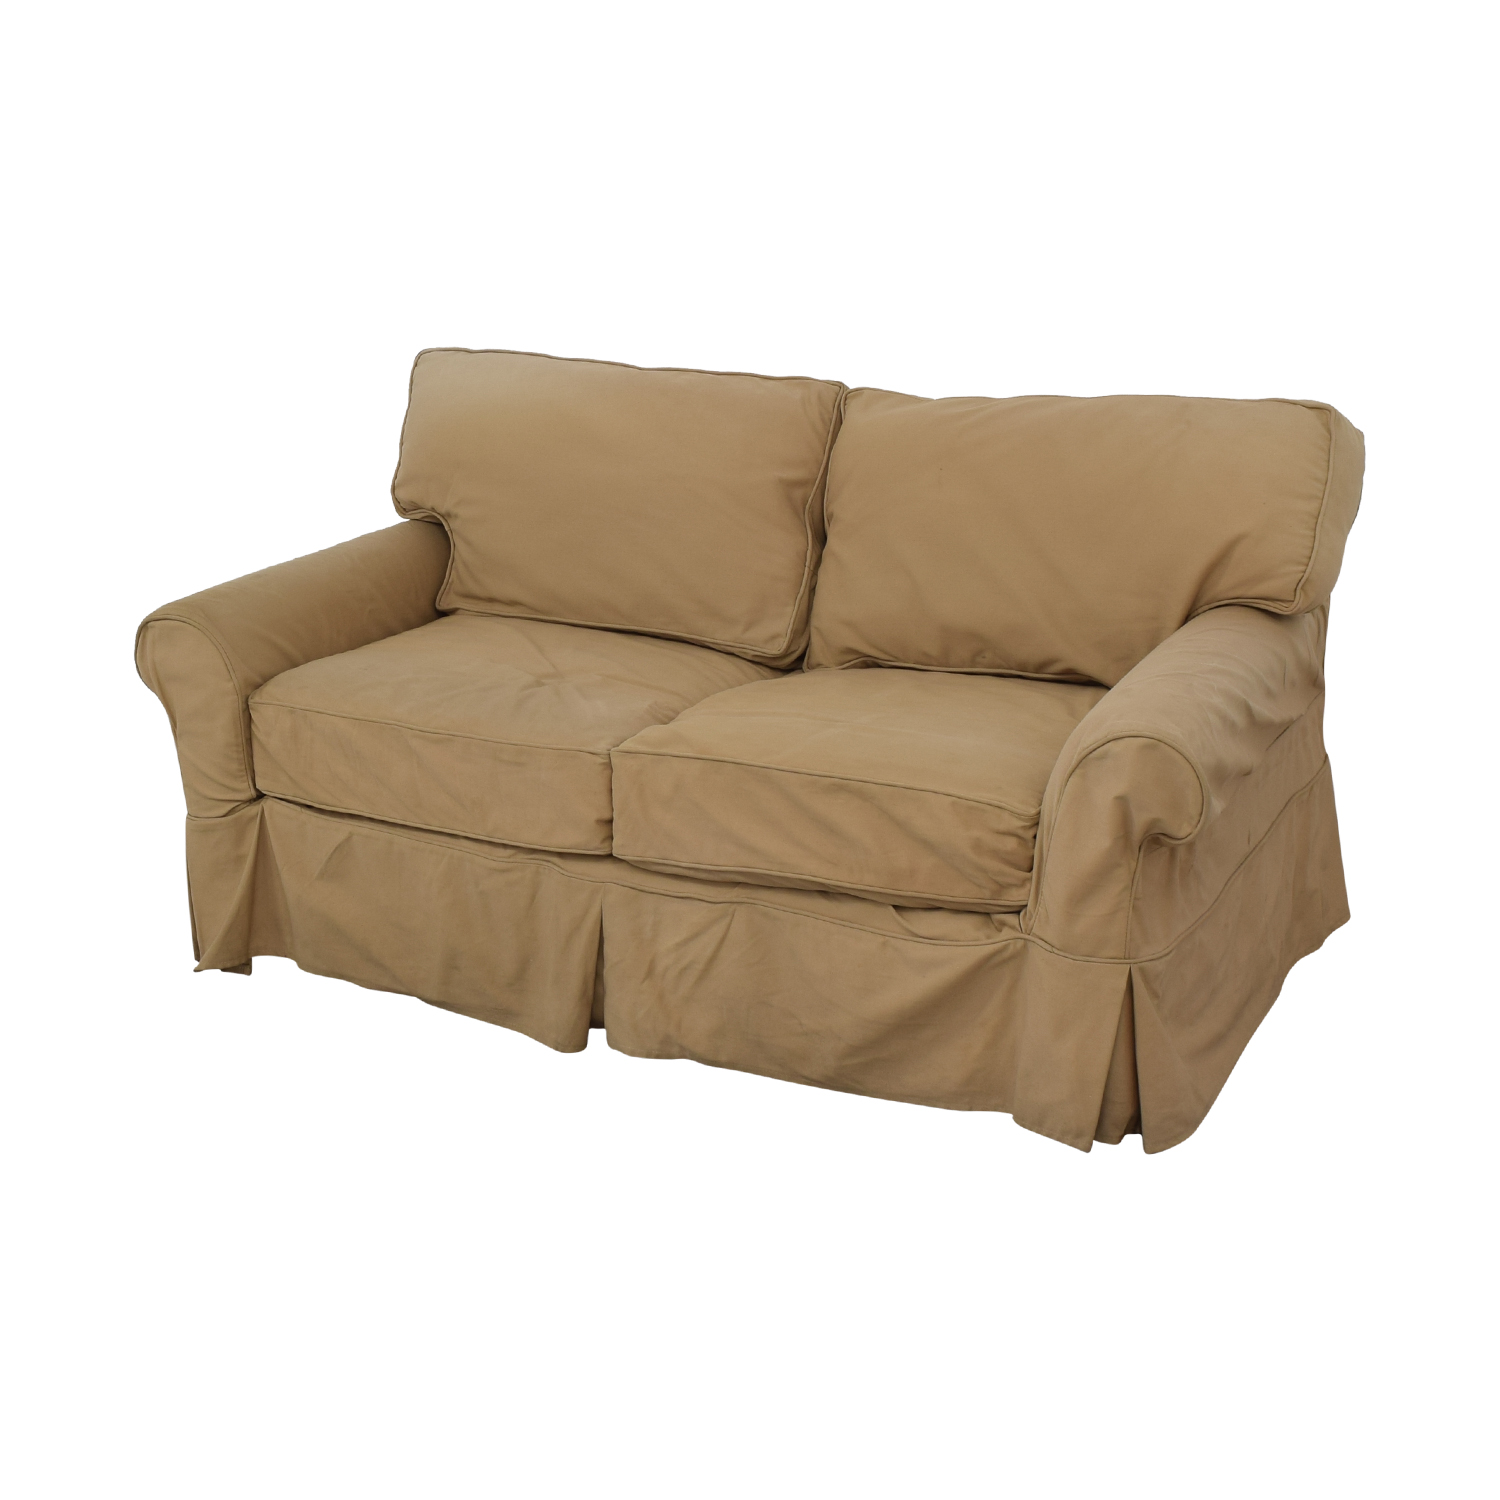 Crate & Barrel Crate & Barrel Potomac Loveseat discount